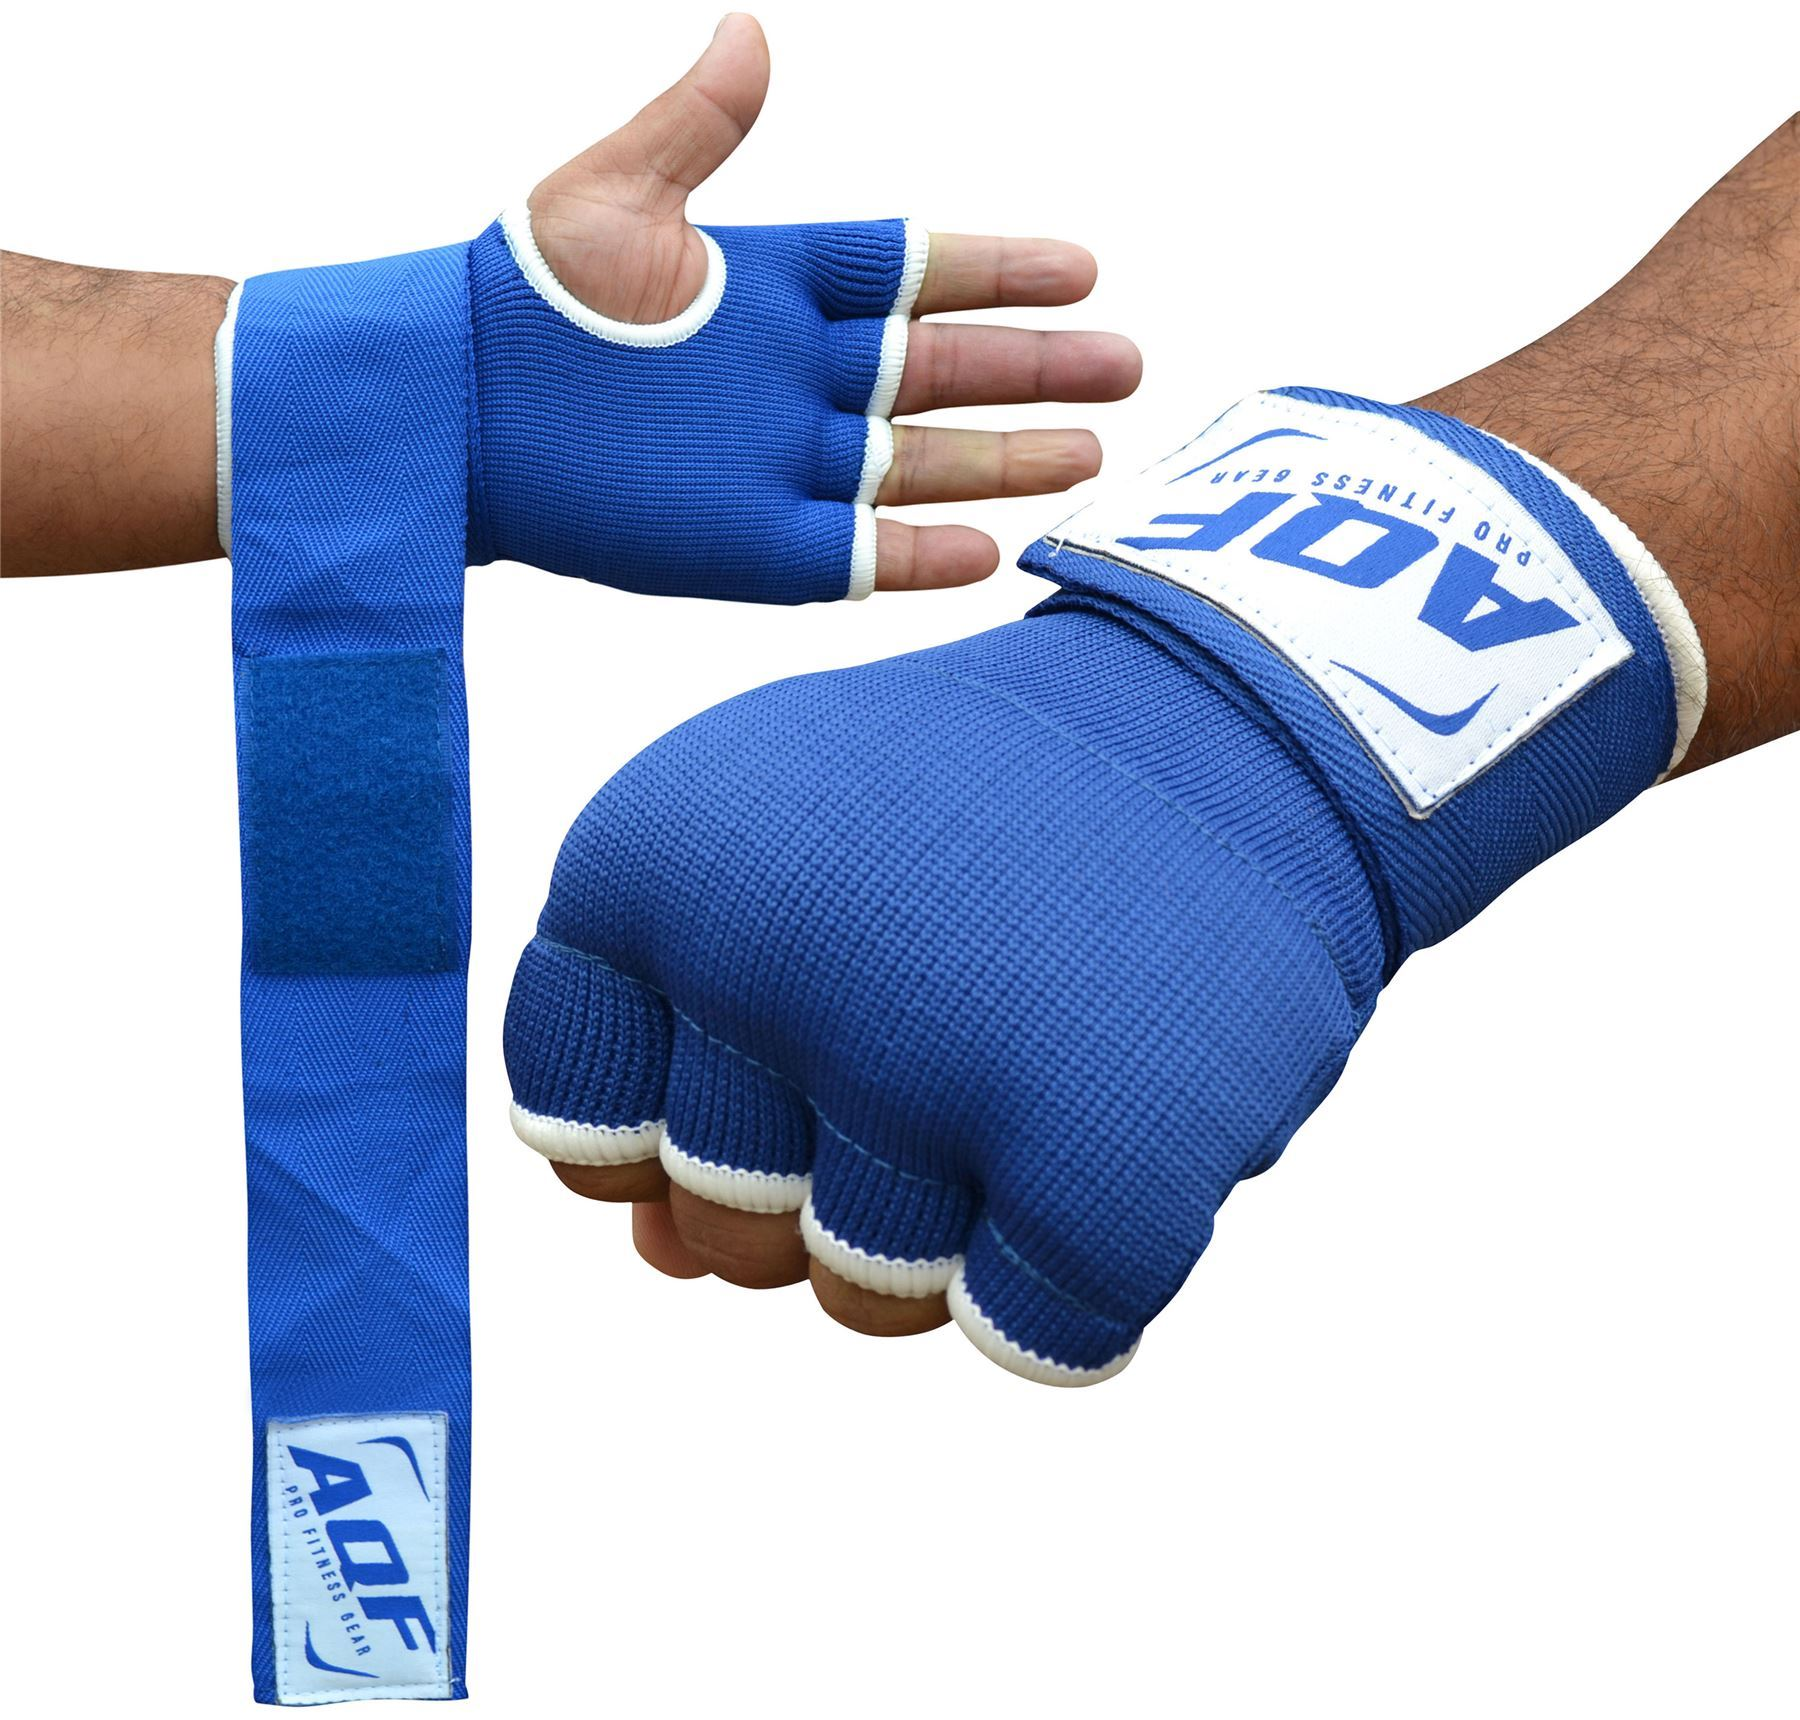 Aqf Weight Lifting Gloves Ultralight Breathable Gym Gloves: AQF Inner Hand Wraps Gloves Boxing Fist Padded Bandages